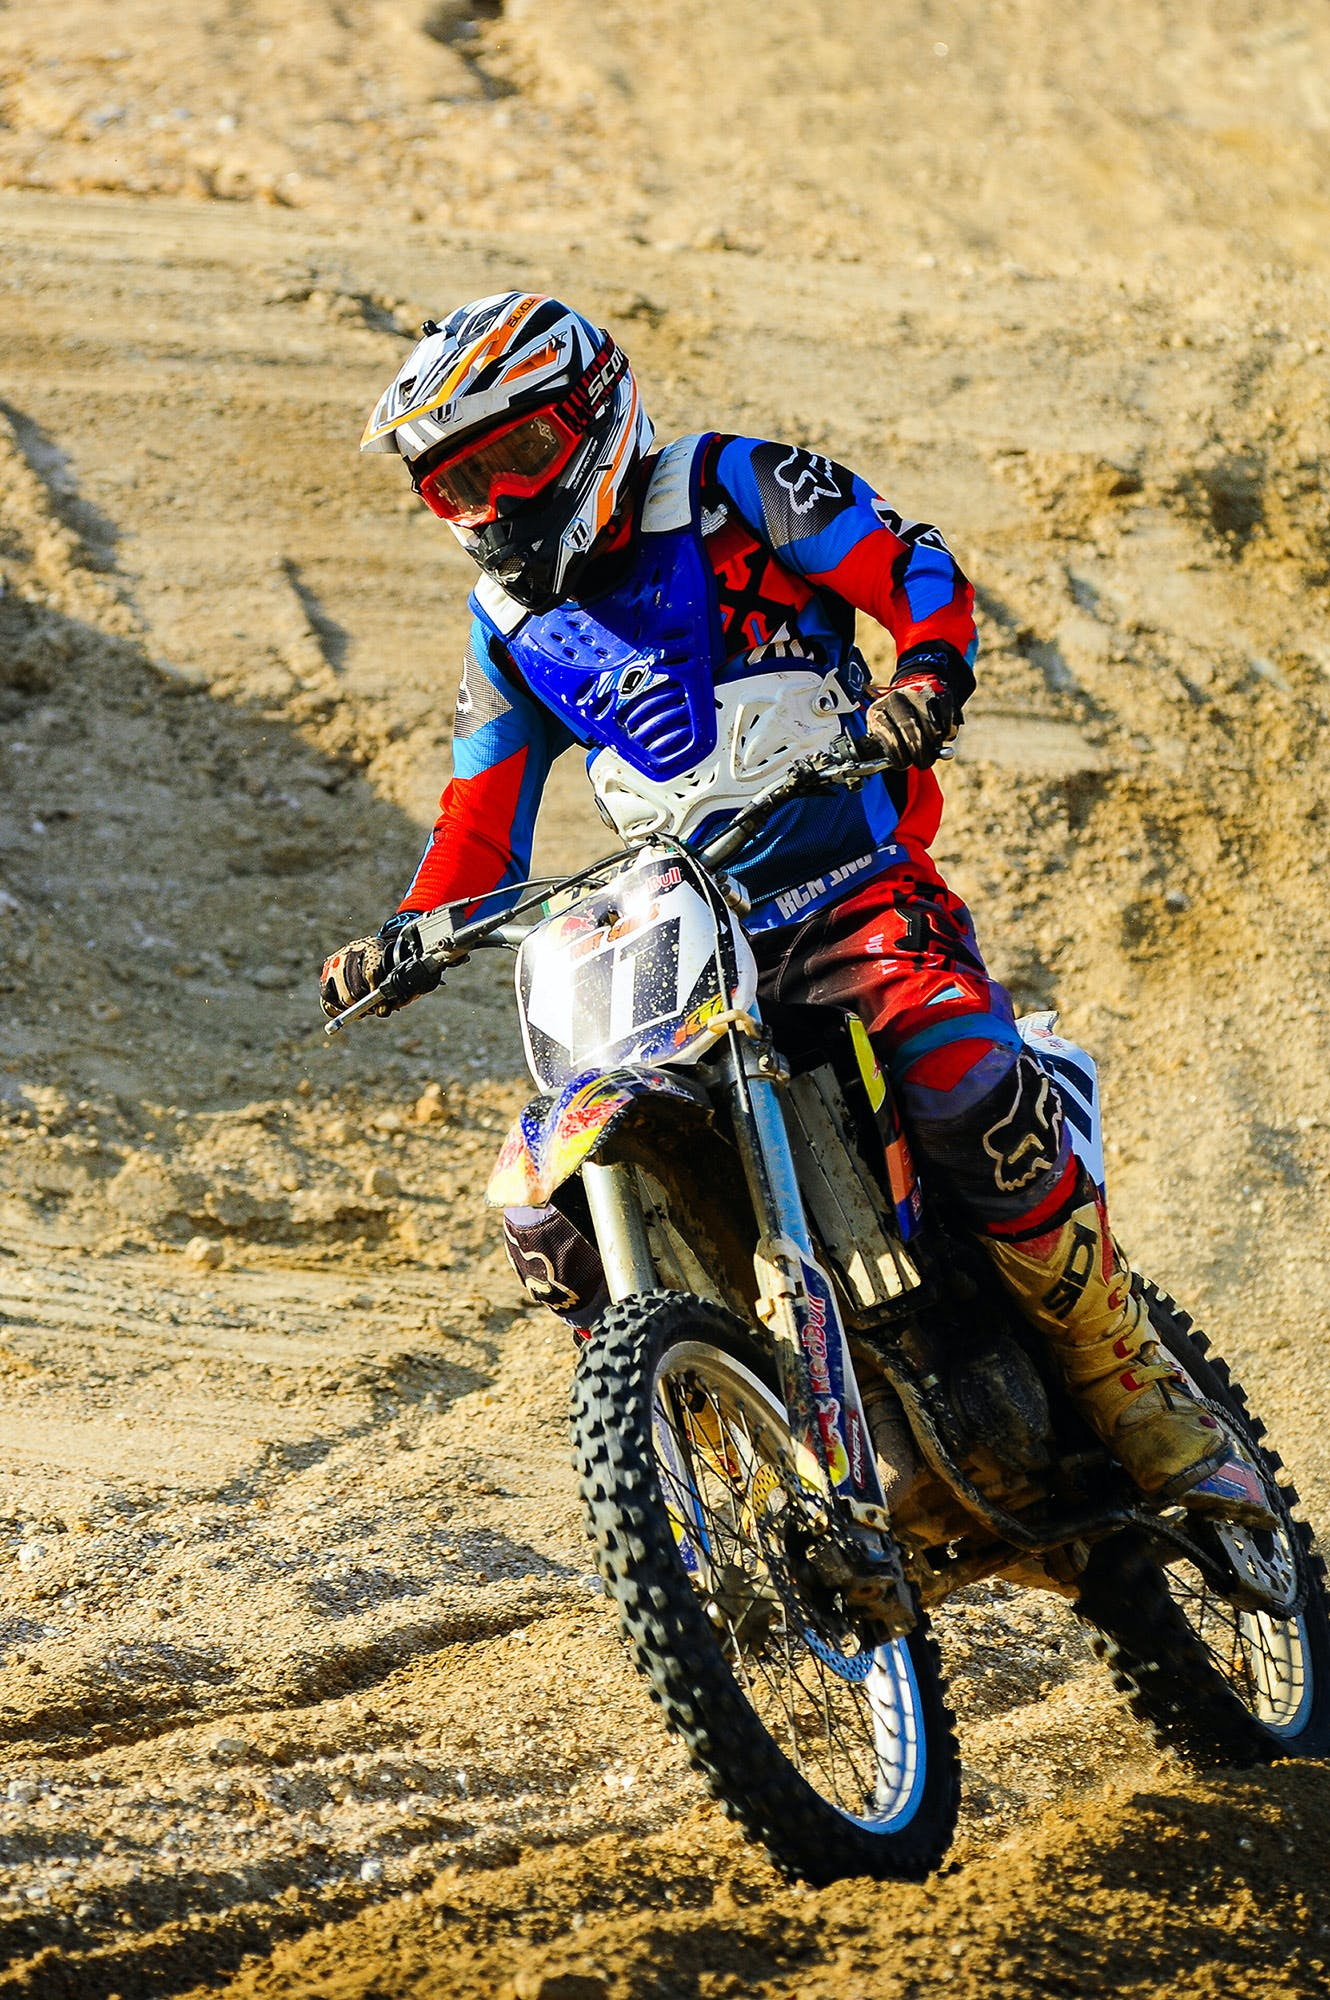 Man Riding on Motocross Dirt Bike